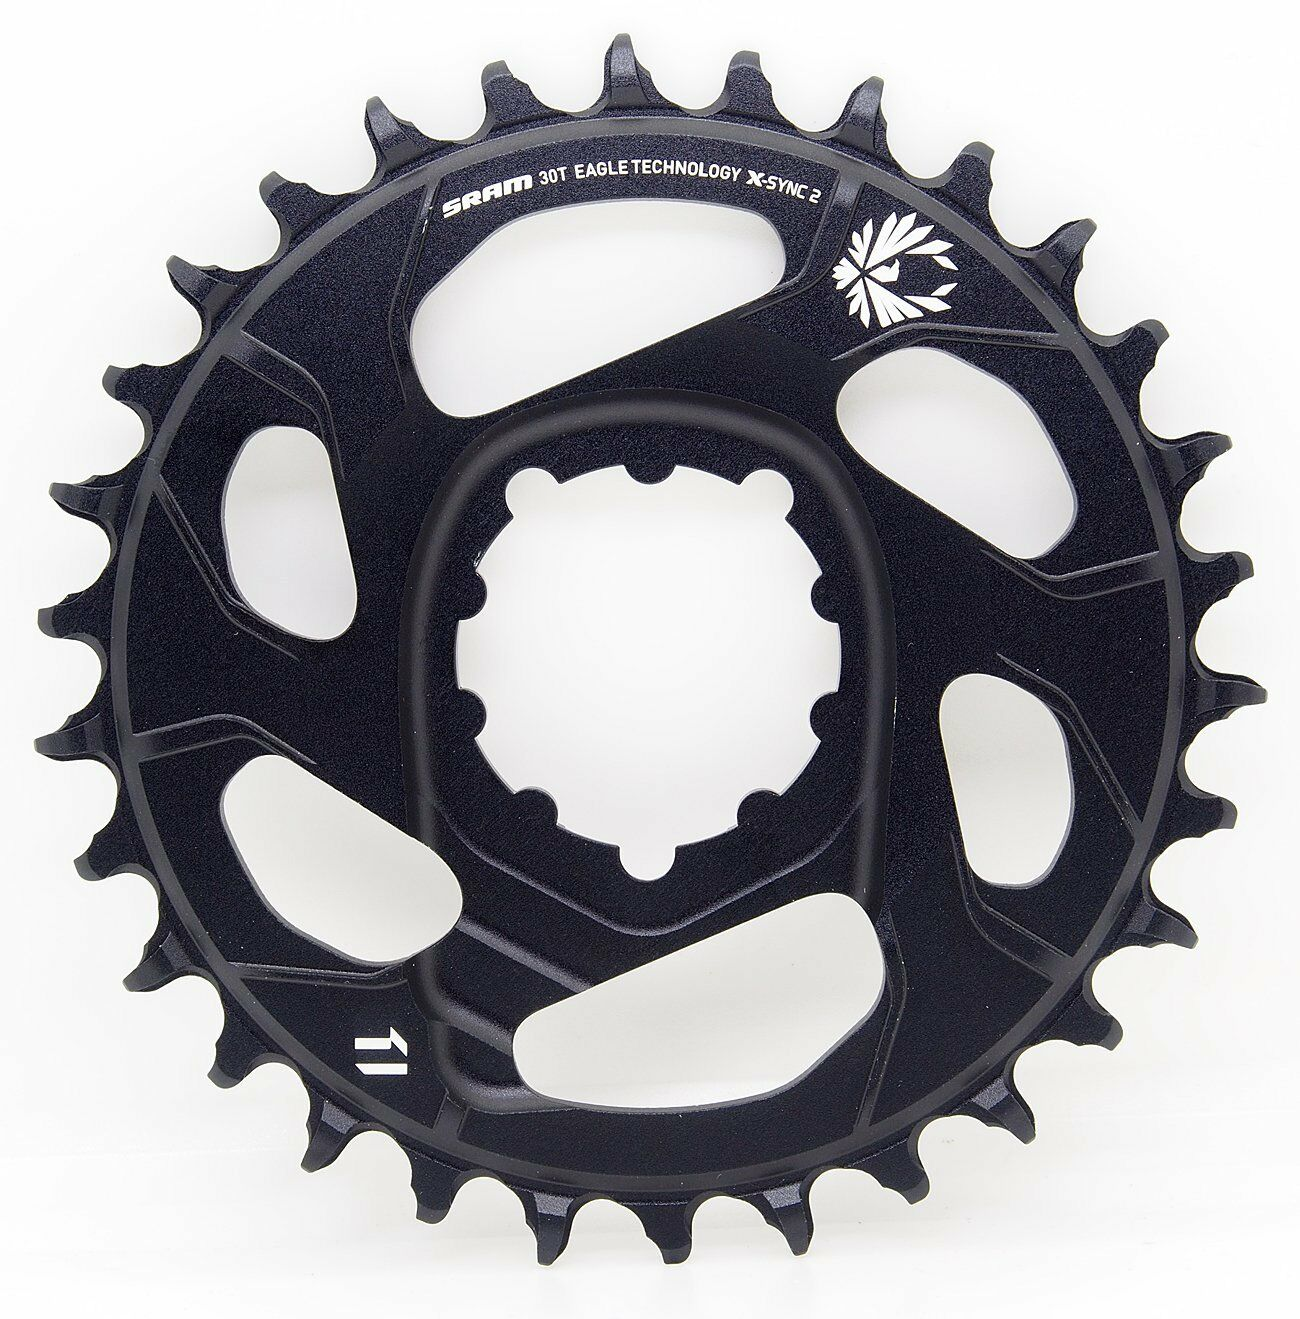 Sram X-SYNC 2 Eagle X01 Direct Mount 30T Chainring -4mm Offset for Cannon. AI